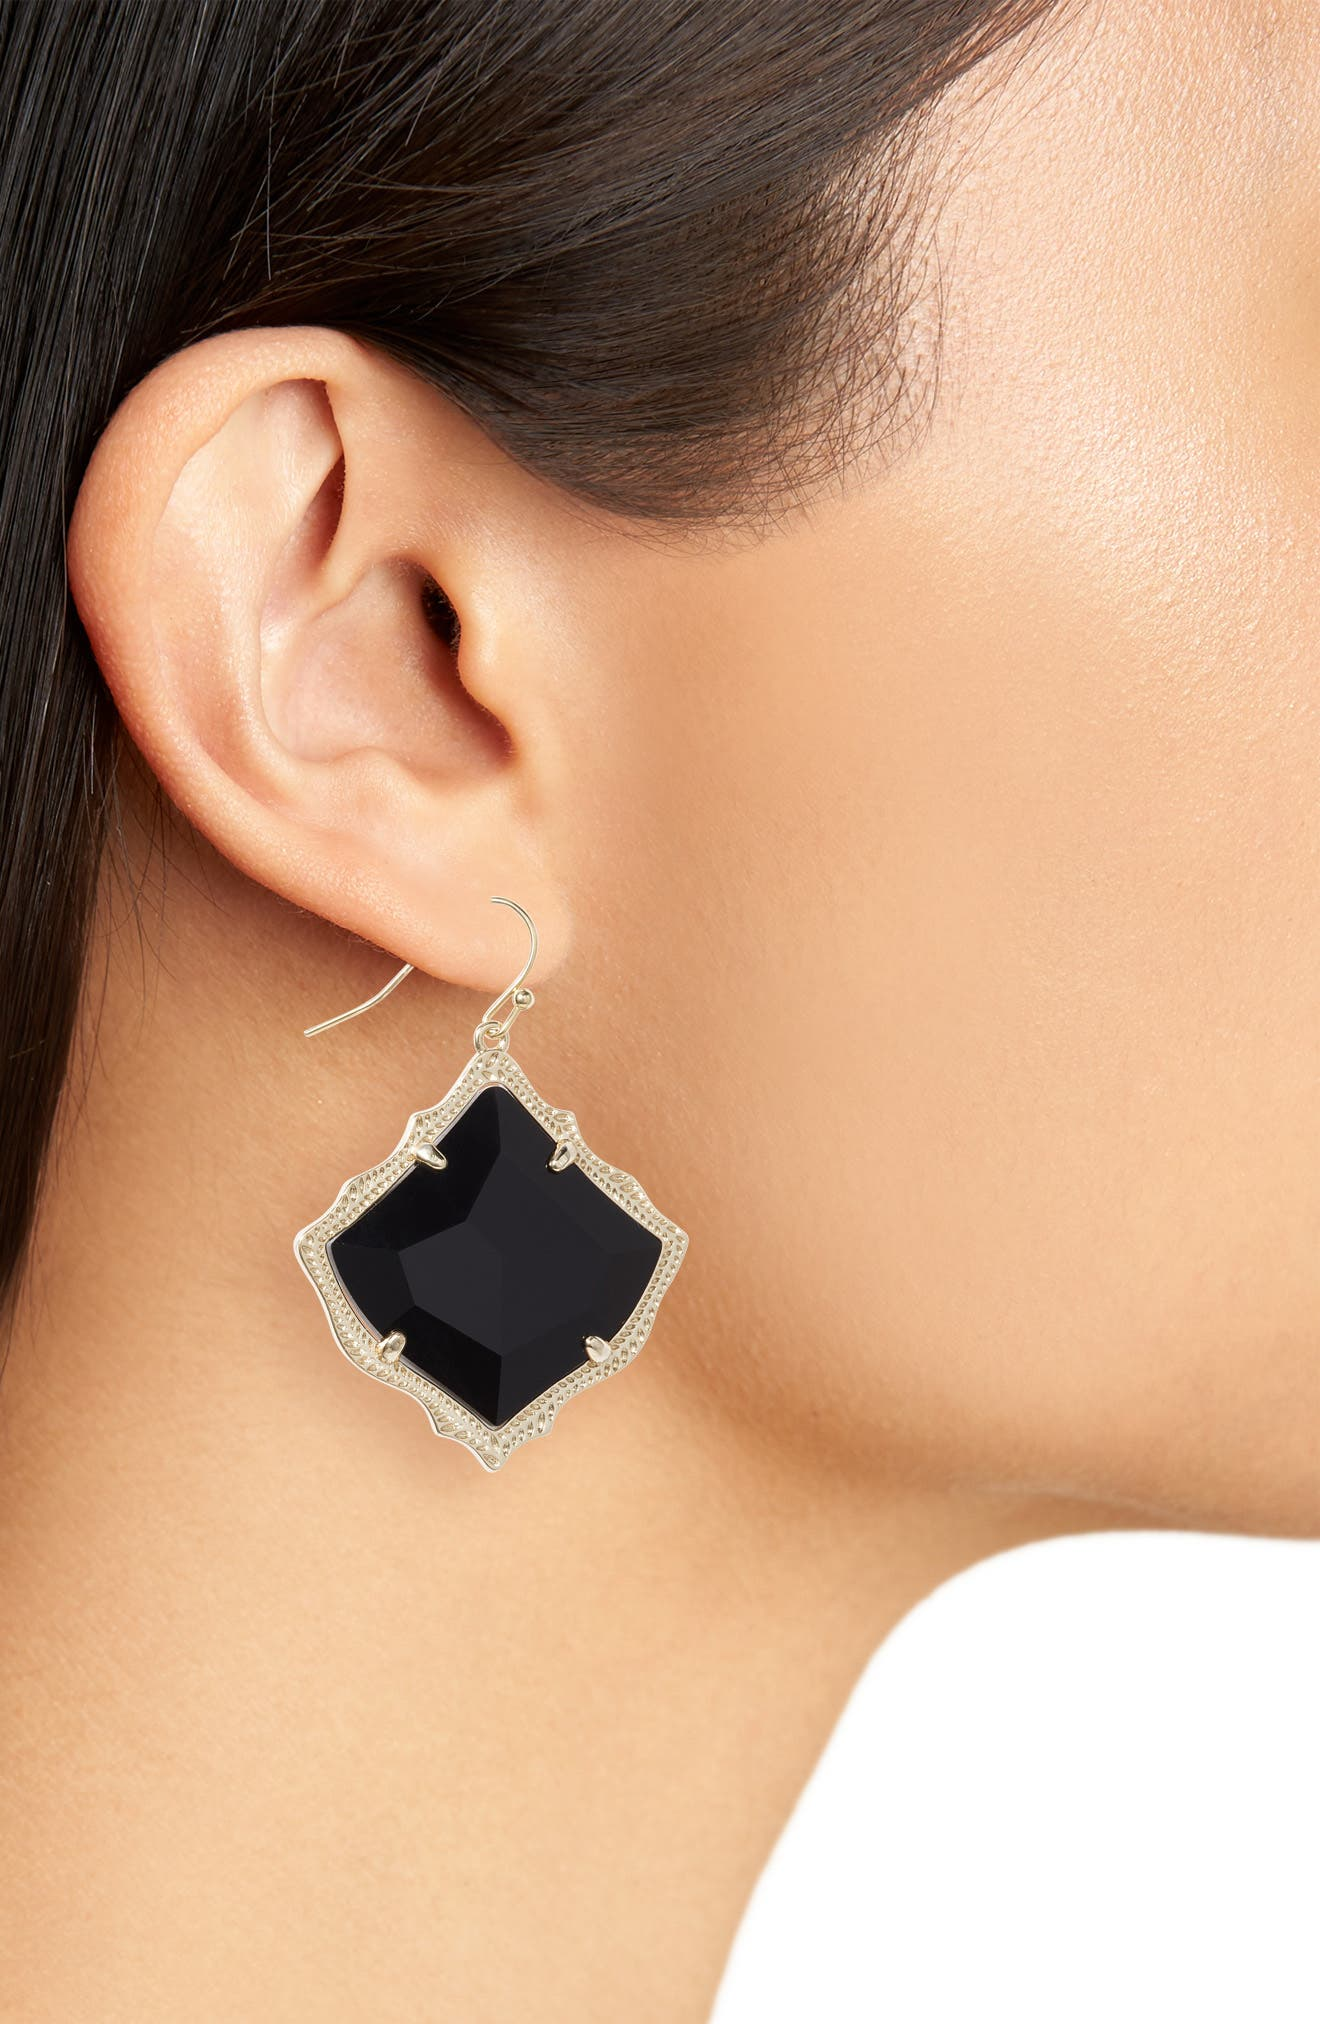 Kirsten Drop Earrings,                             Alternate thumbnail 2, color,                             BLACK OPAQUE GLASS/ GOLD